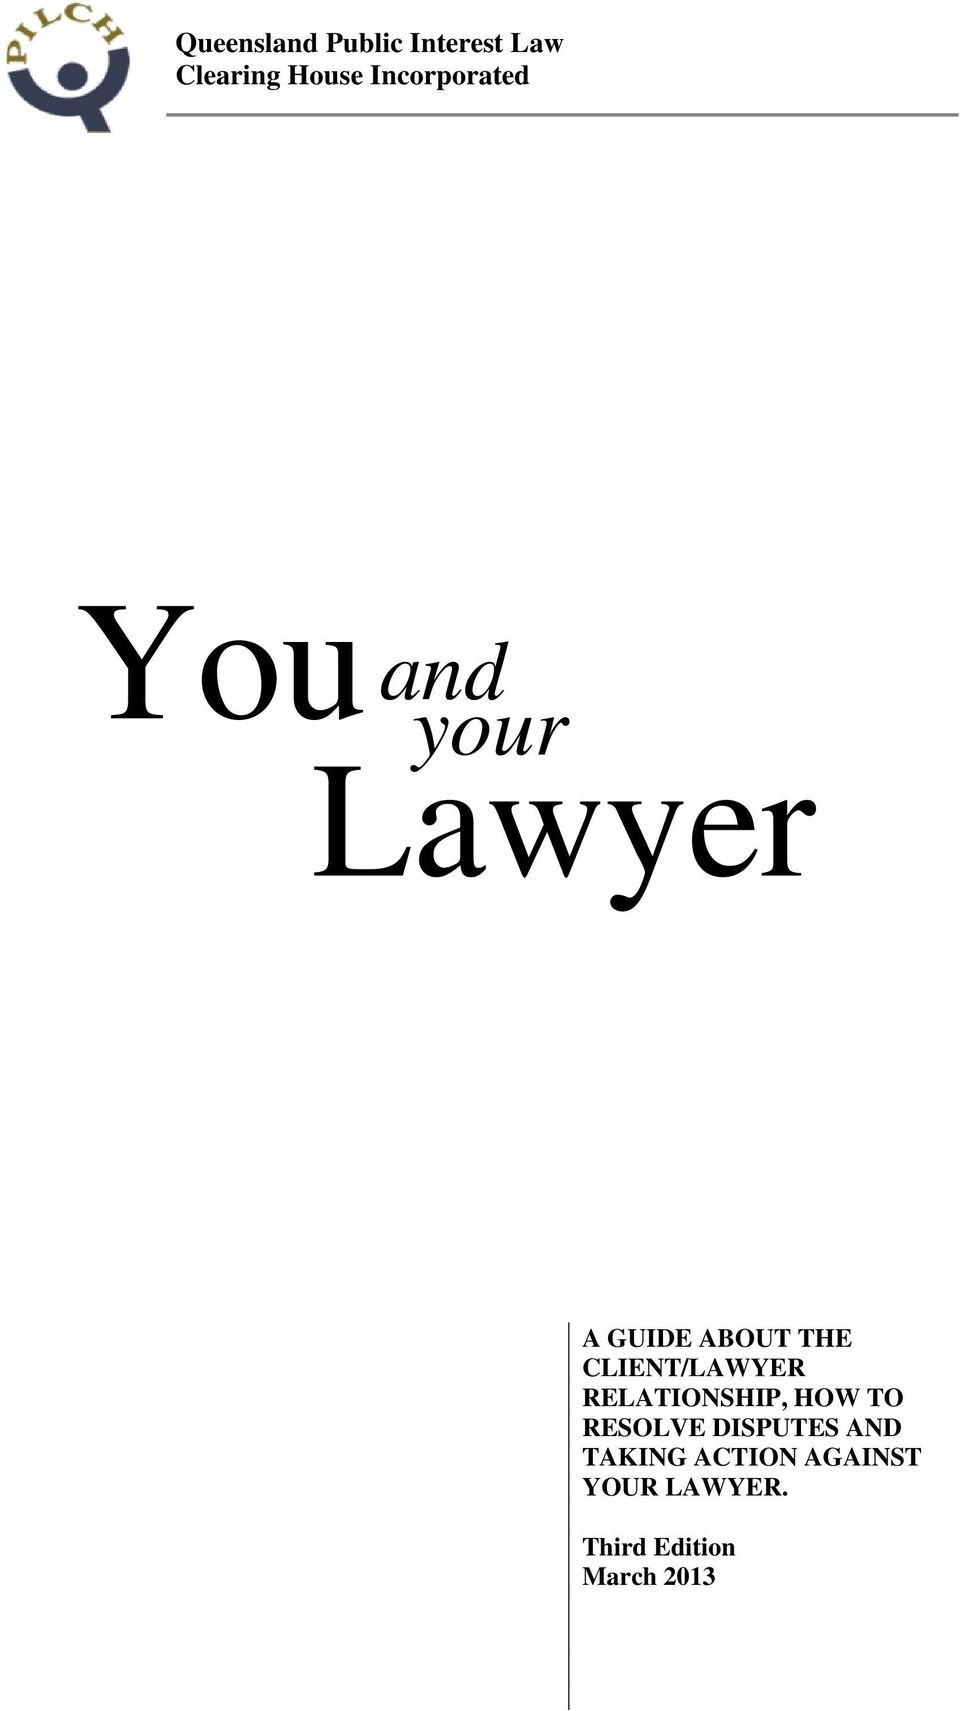 CLIENT/LAWYER RELATIONSHIP, HOW TO RESOLVE DISPUTES